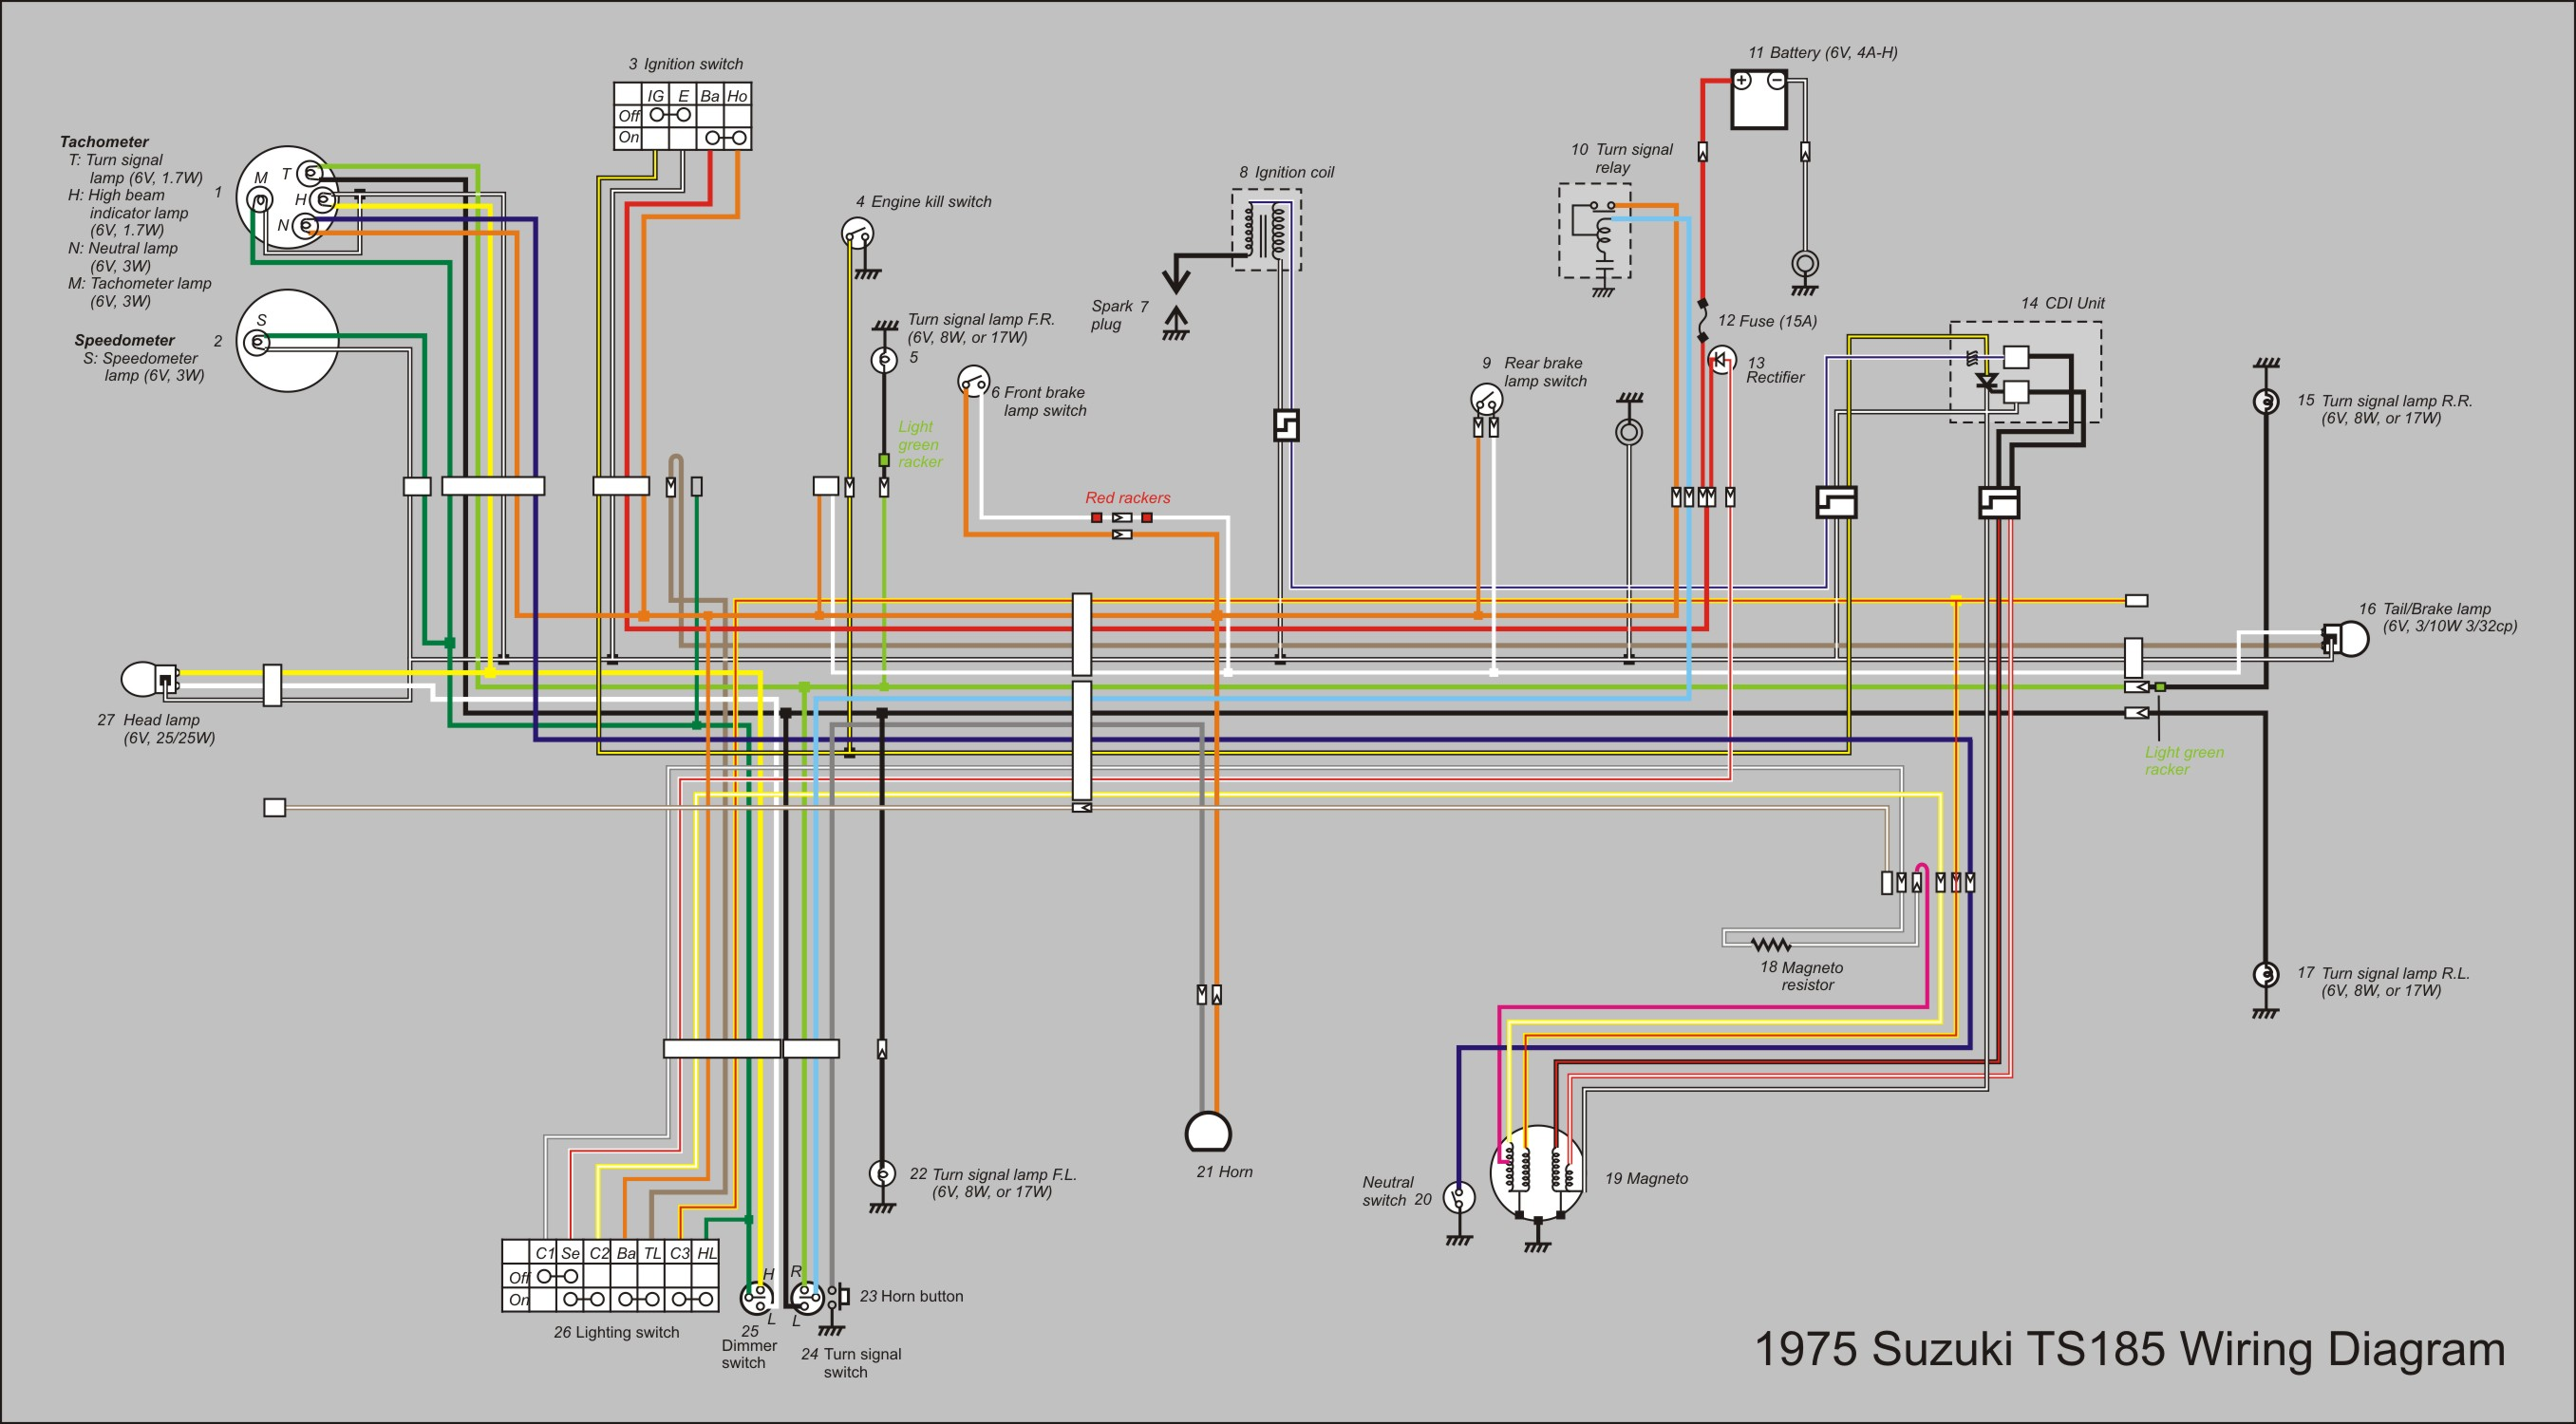 file ts185 wiring diagram new jpg file ts185 wiring diagram new jpg